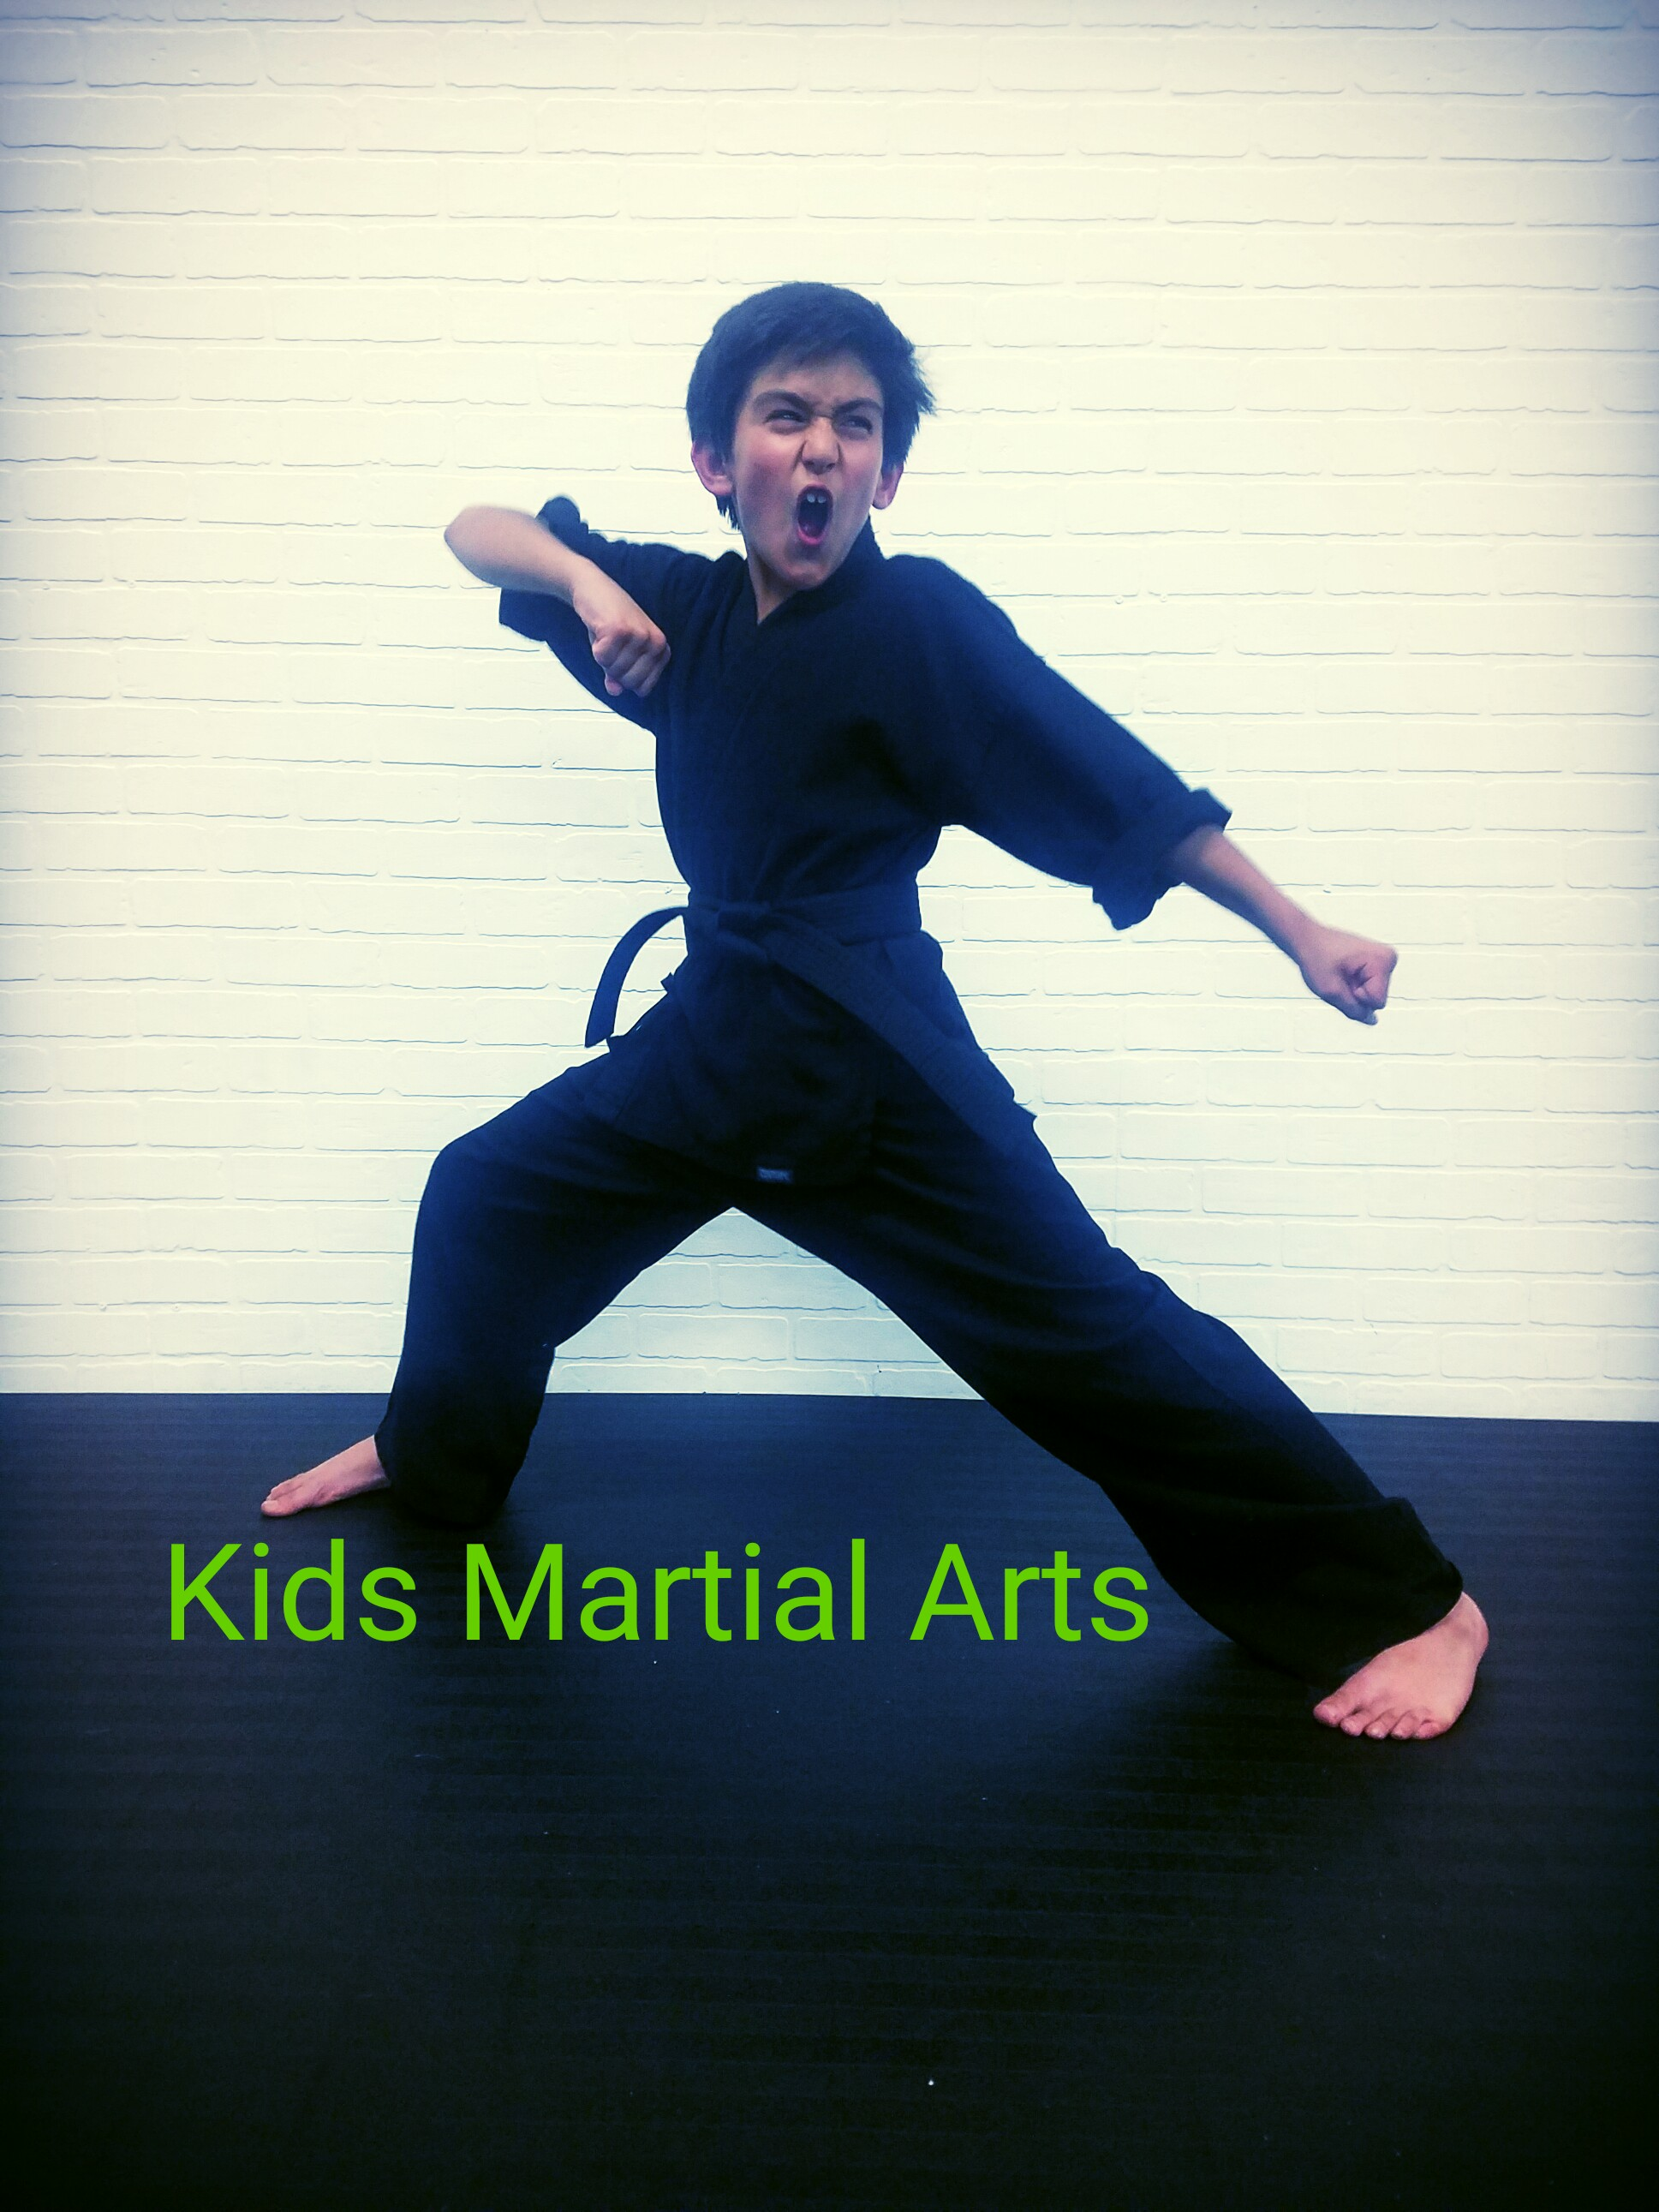 martial arts program of The Refinery Family Fitness Center, Littleton<br>